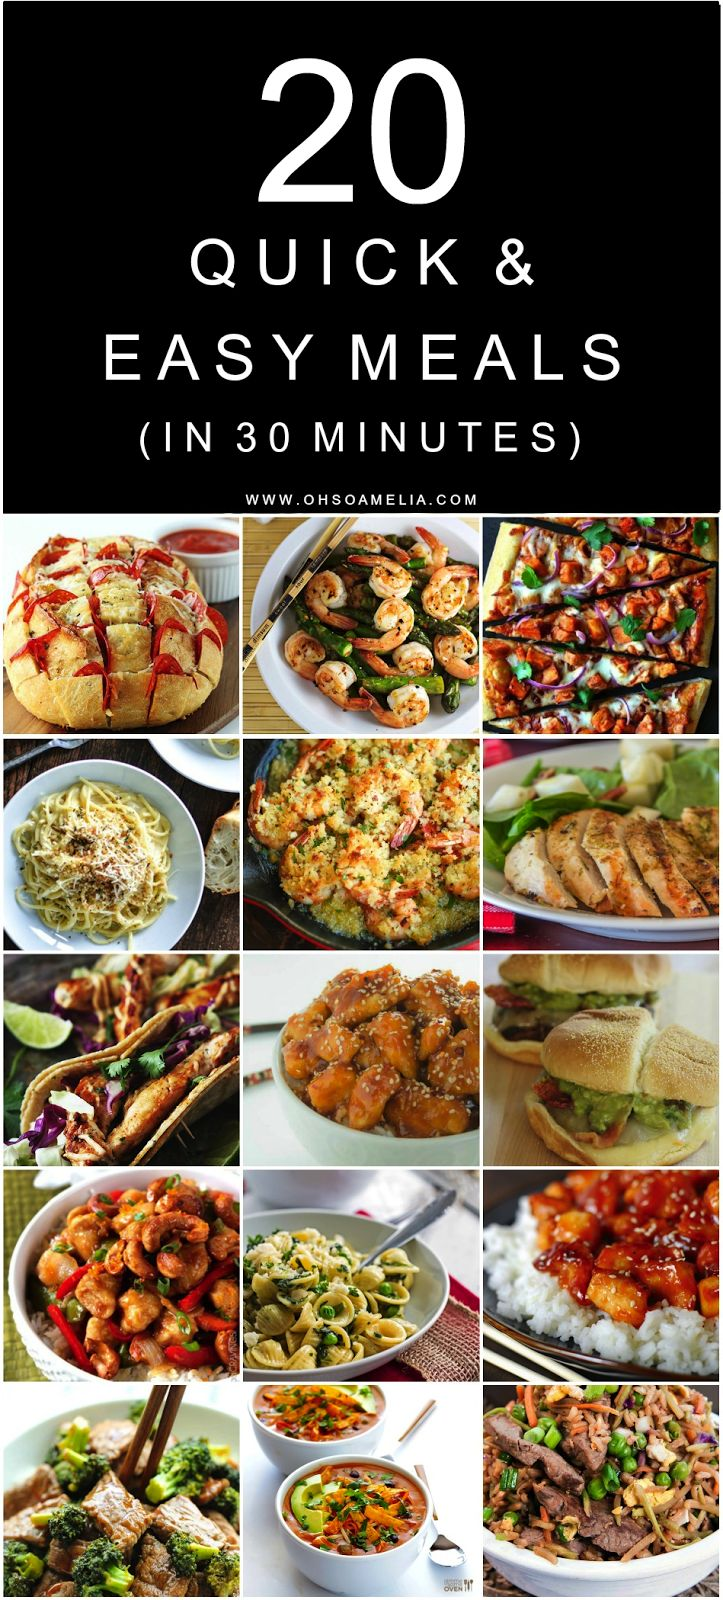 Here are 20 Quick & Easy Meals which you can prepare and cook in 30 minutes or less which are great for busy mums or after a long day at work!